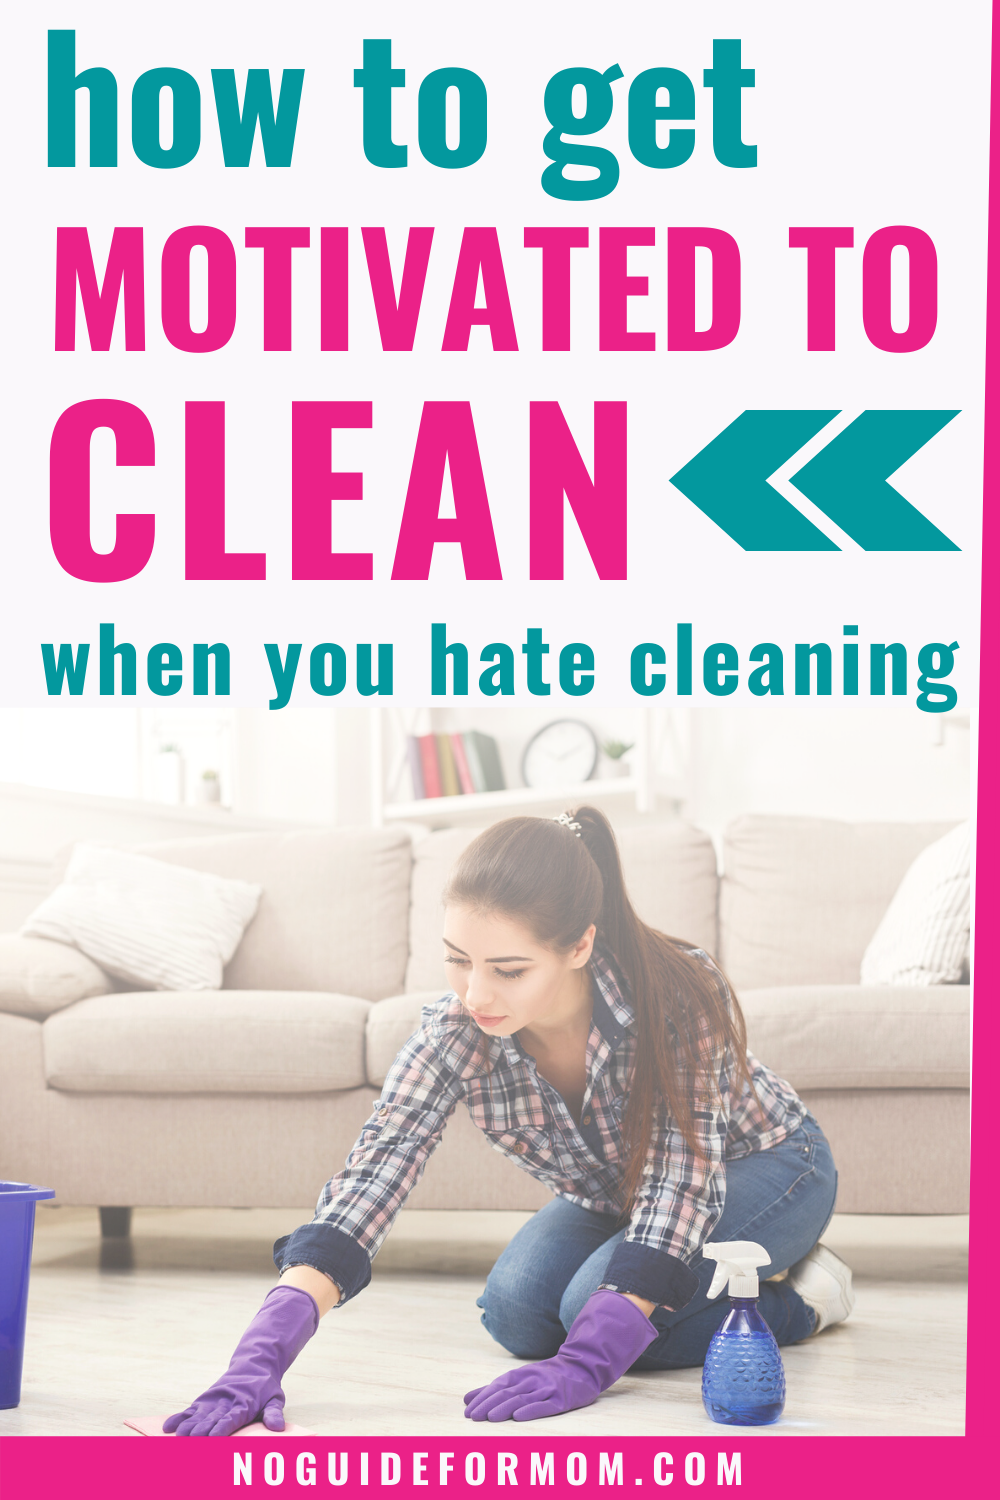 17 Tremendous Ways To Get Motivated To Clean Cleaning Motivation Clean House Kids Cleaning